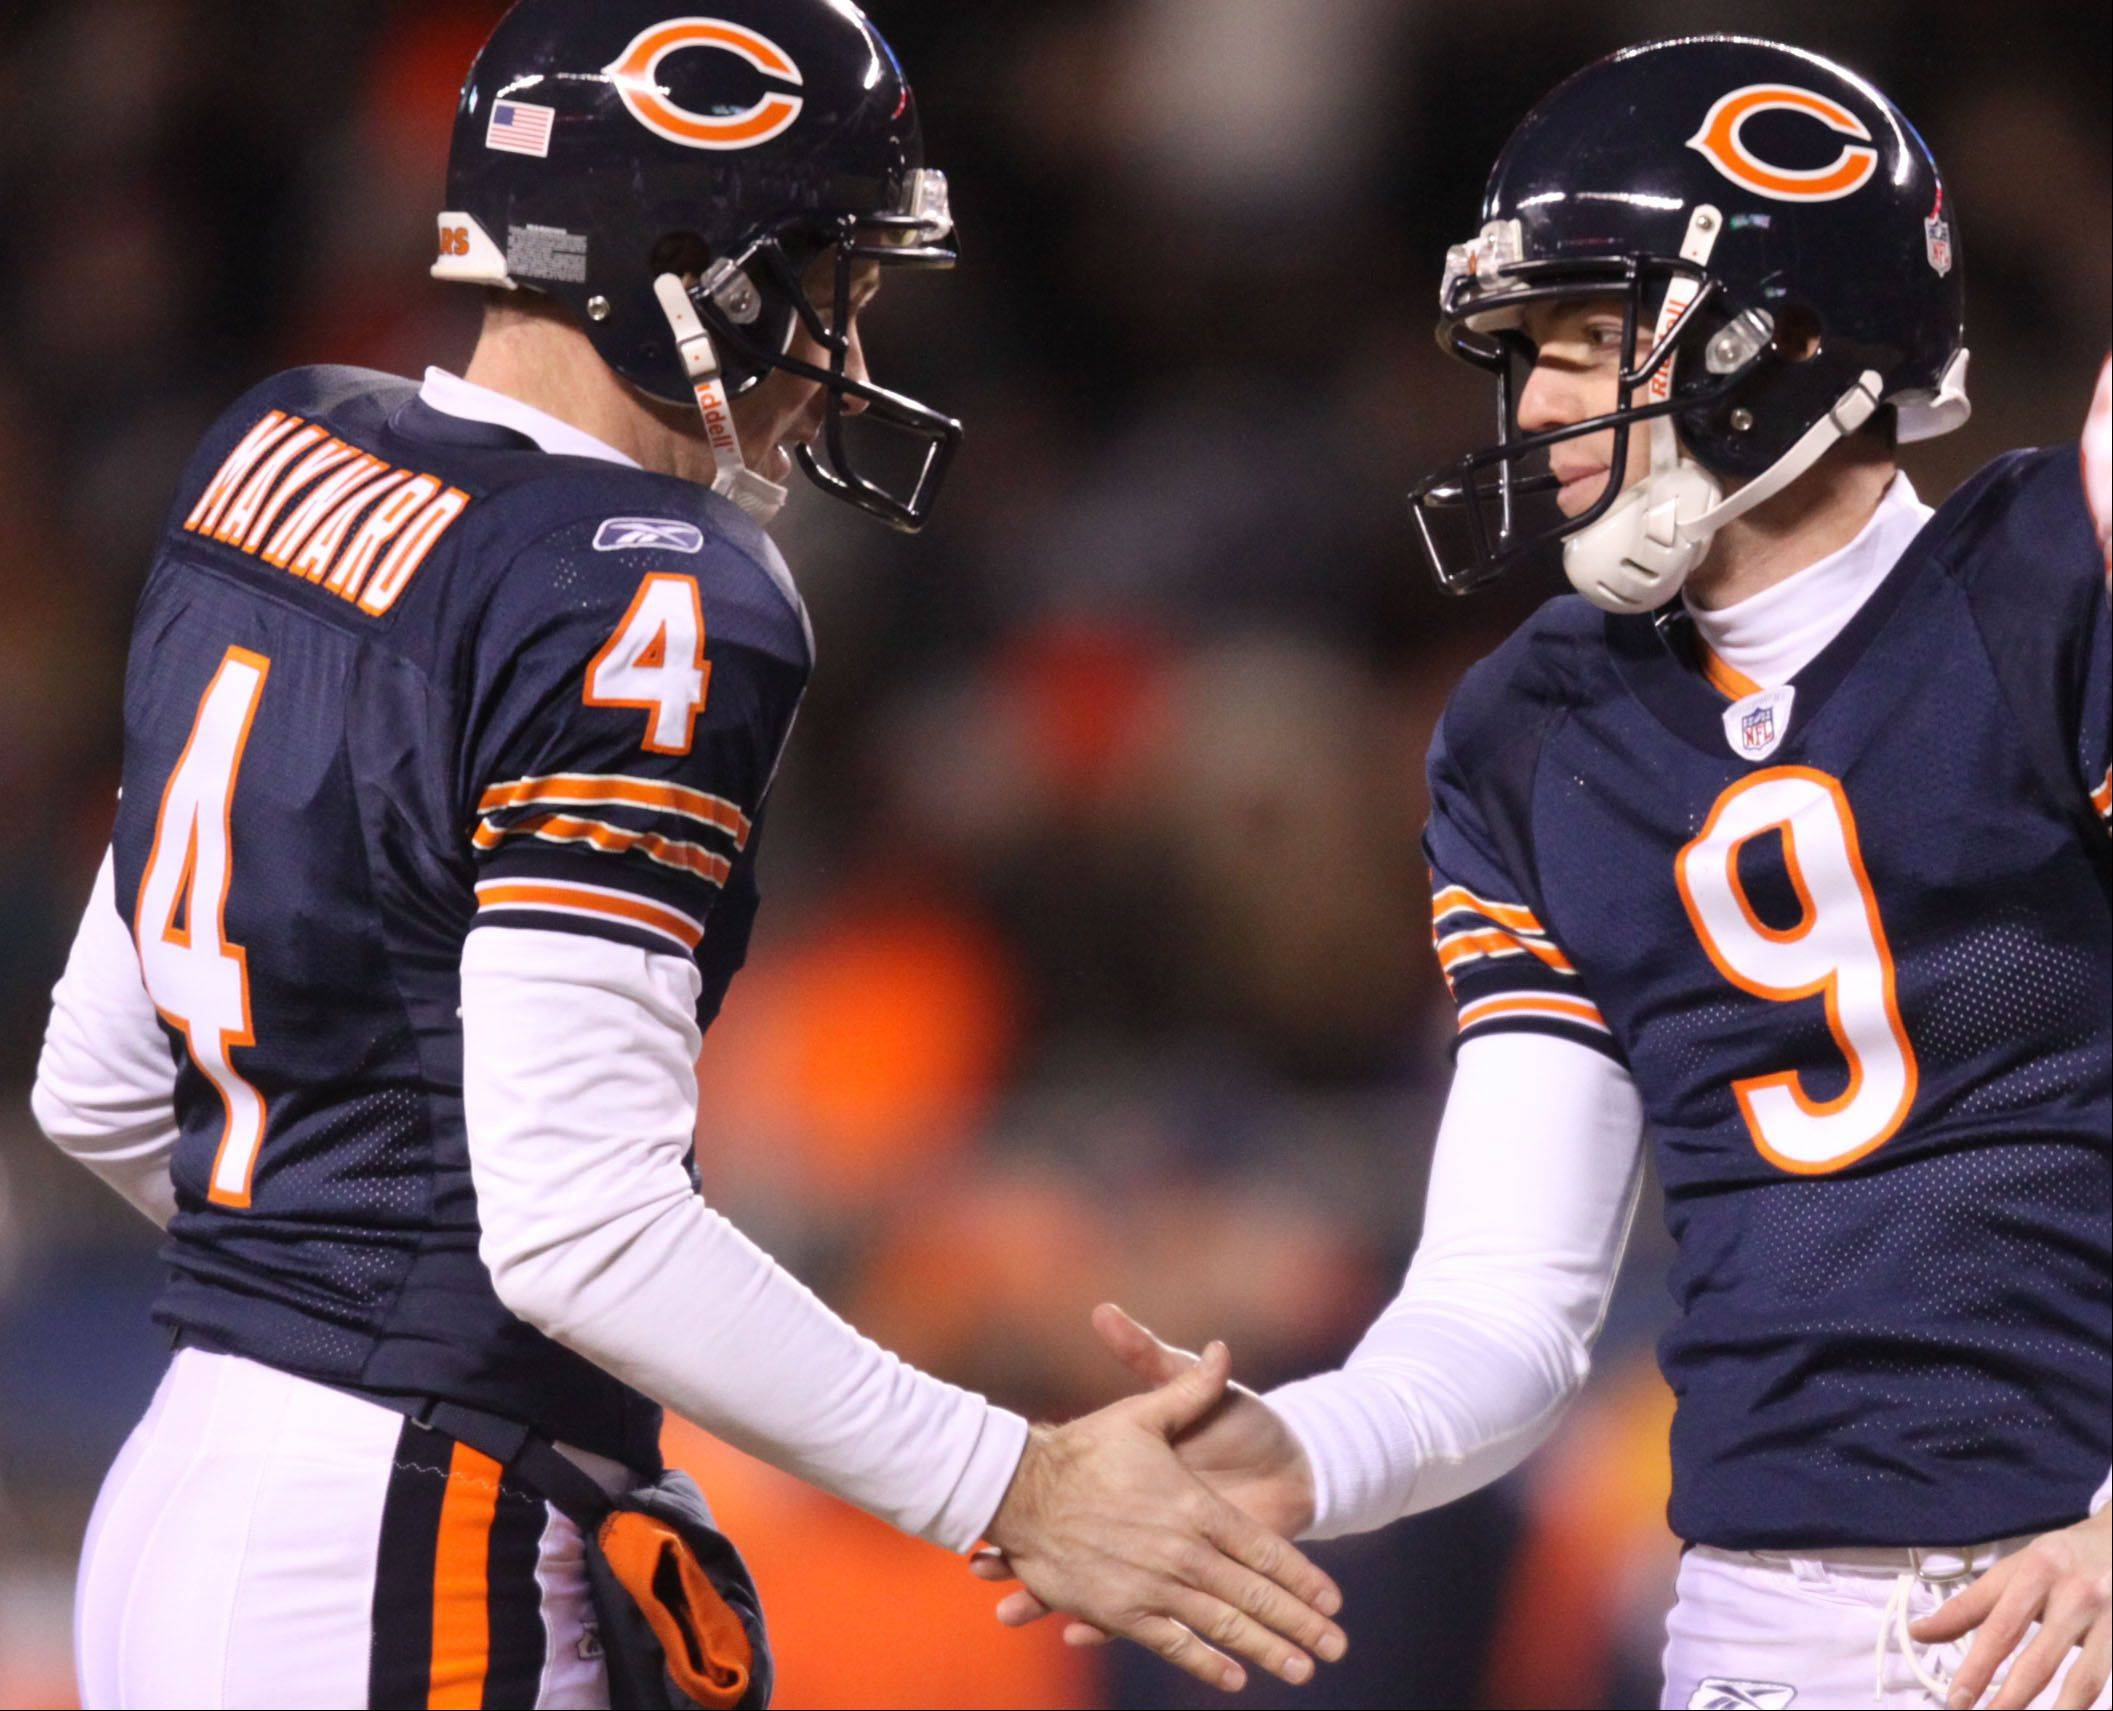 Brad Maynard and Robbie Gould enjoyed a lot of success with the Bears on the field goal unit. Maynard, a holder and punter, will not be back with the Bears this season.